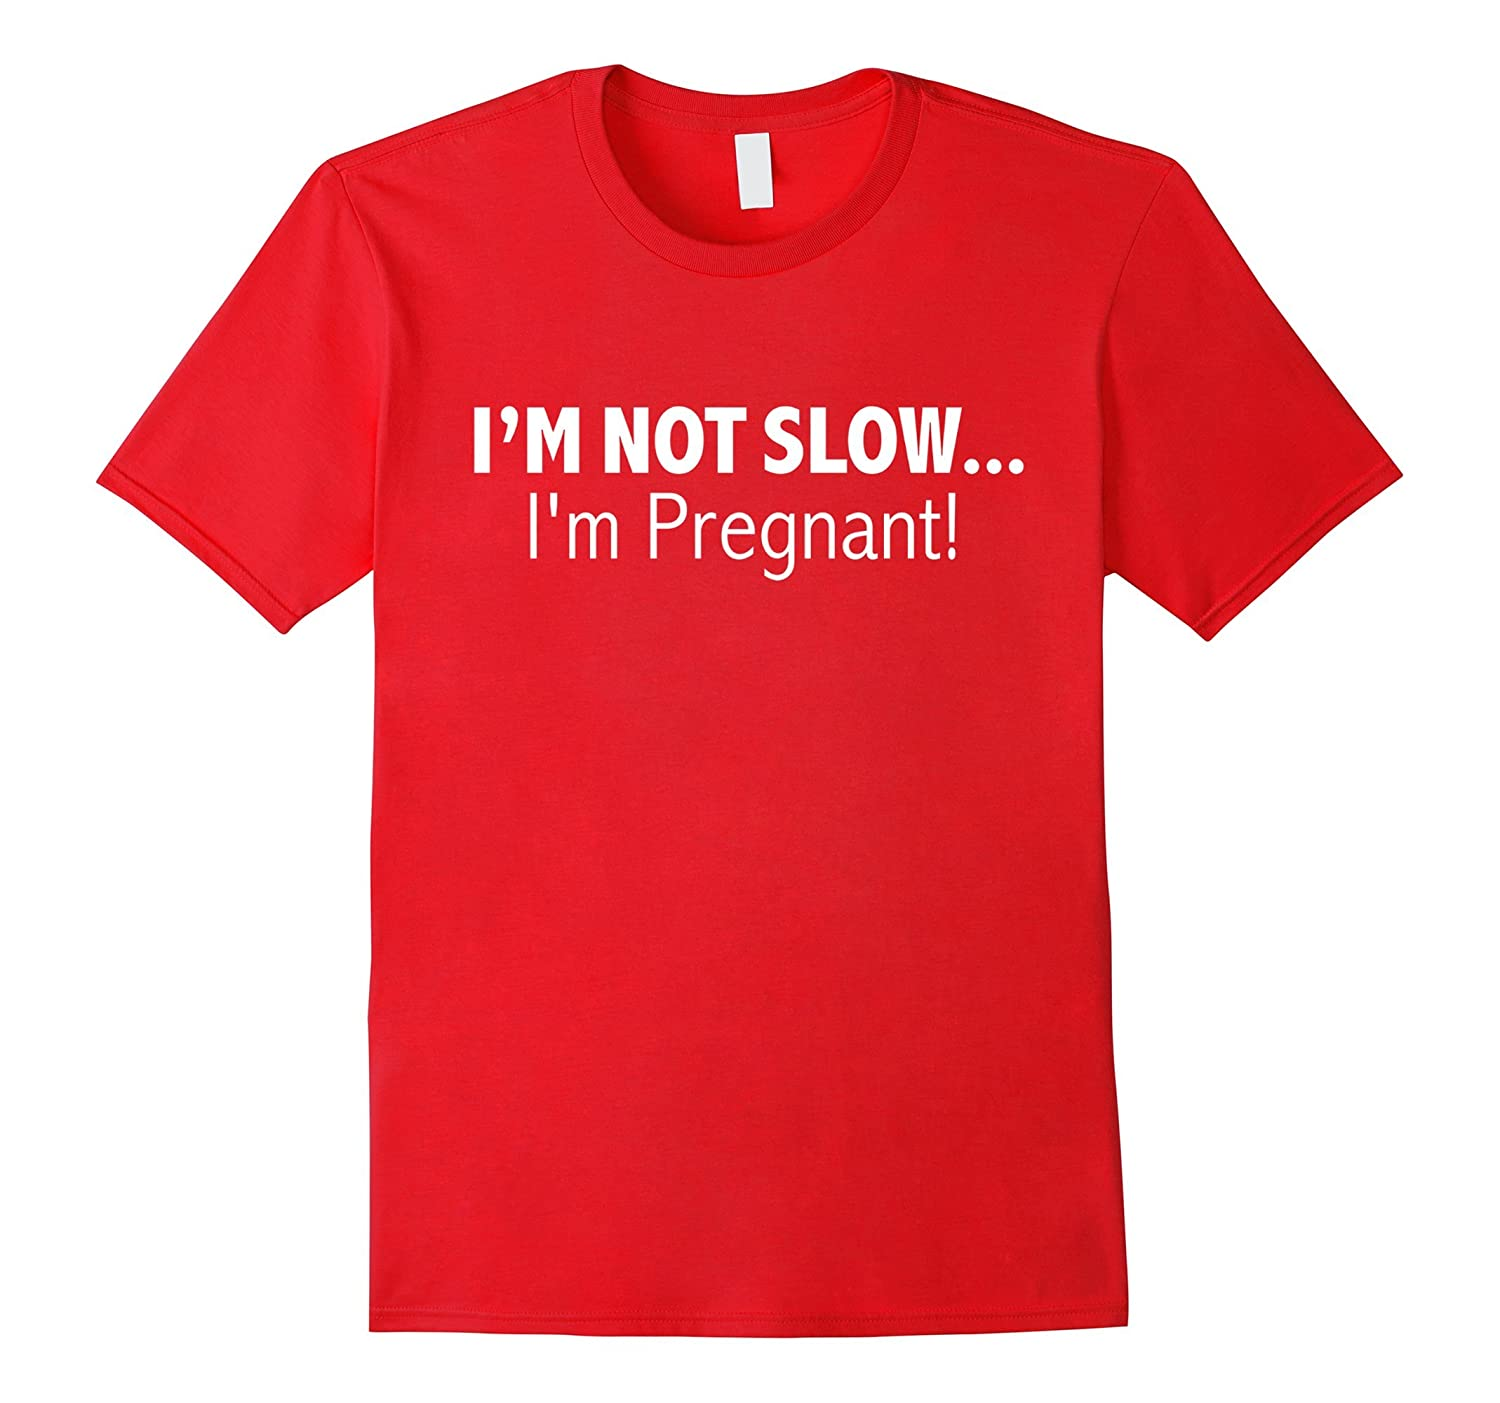 2c09ca29bd30d I'm not slow I'm Pregnant Funny T-shirt Maternity Mother-BN – Banazatee